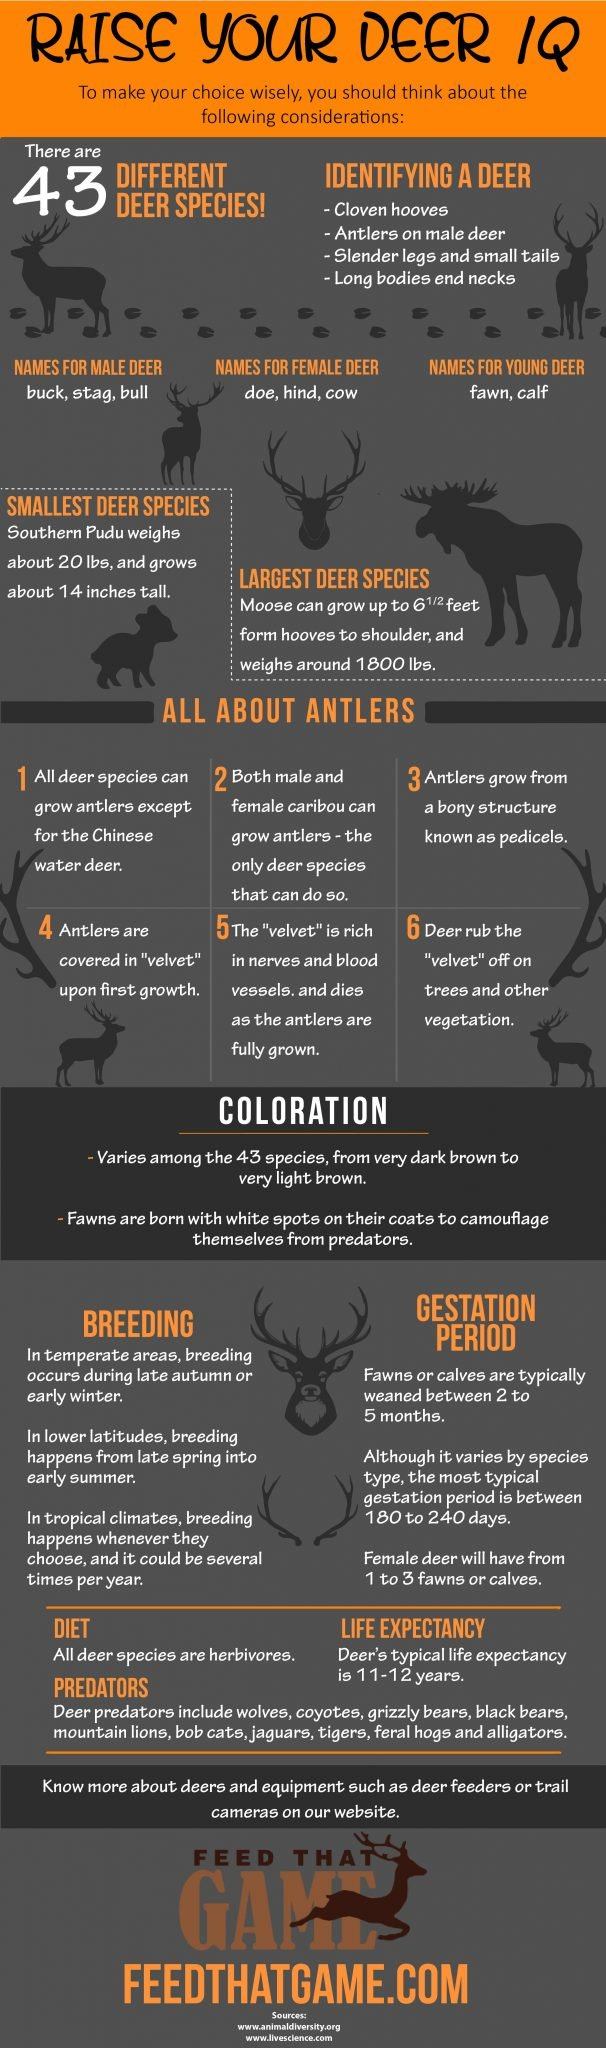 raise your deer knowledge